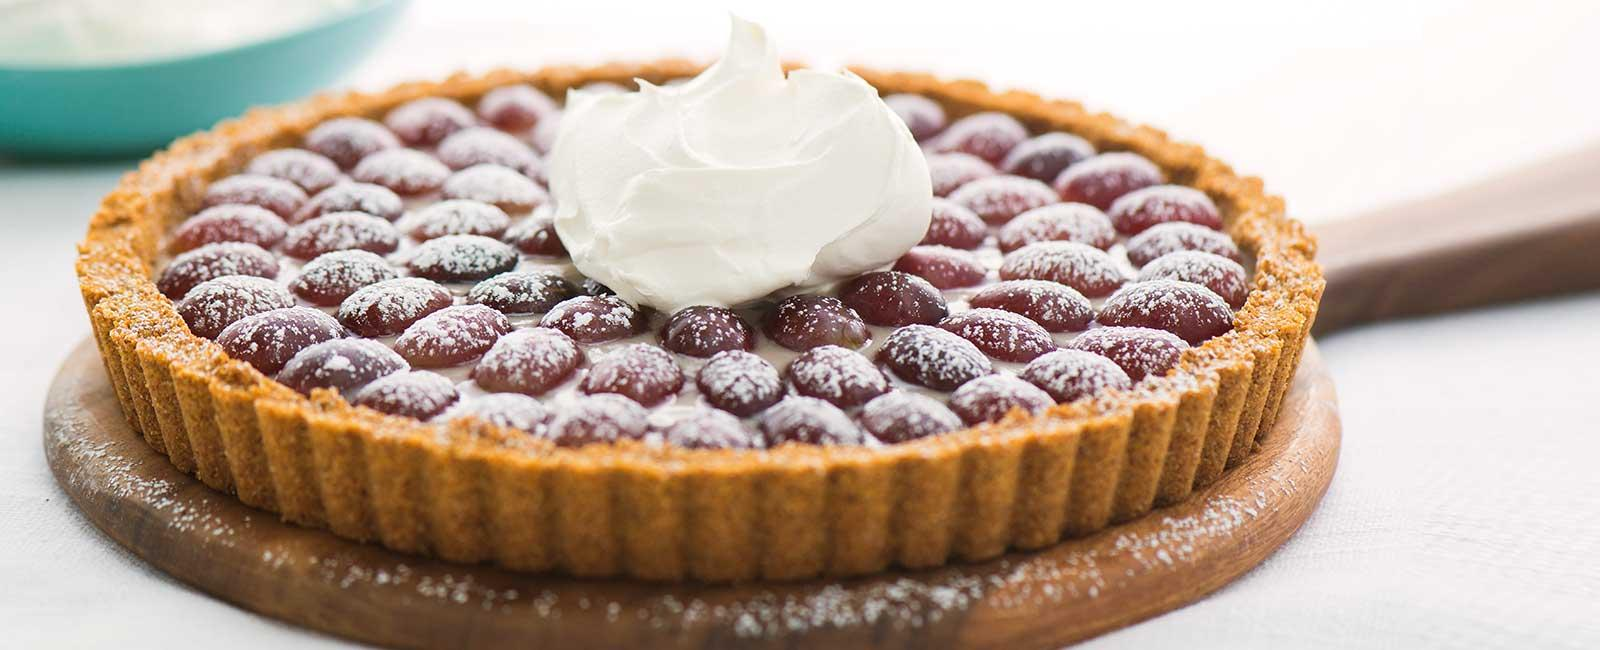 Grape Tart with Peanut Butter Whipped Cream